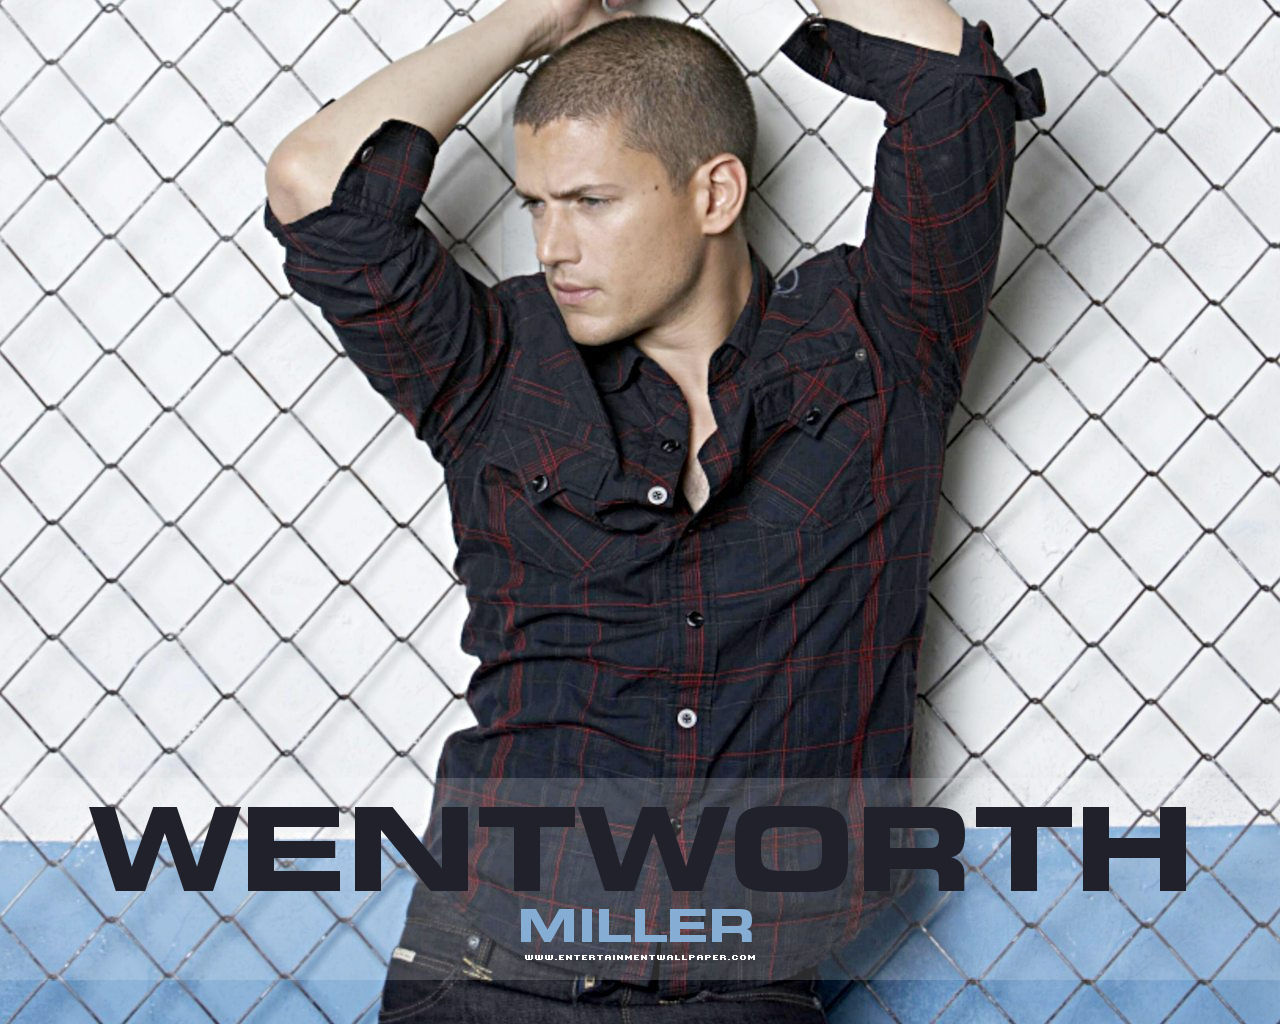 Index of /image/PersSong gallery/Wentworth Miller